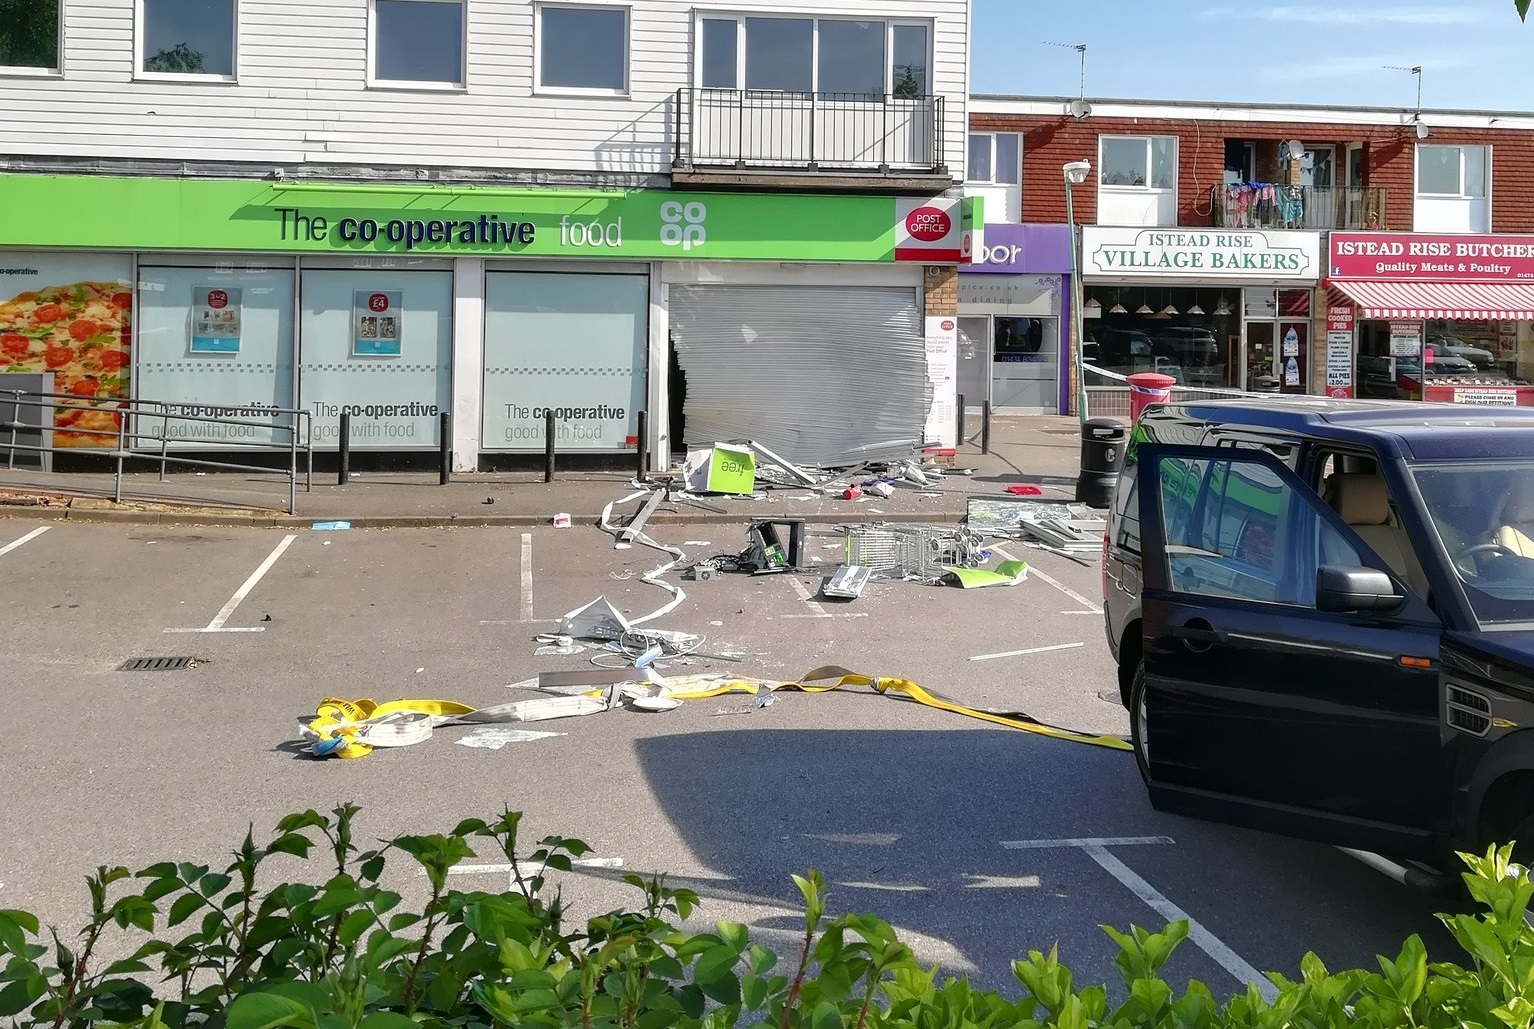 Picture credit: @PopGiants Debris could be seen strewn across the Coop car park this morning after the incident